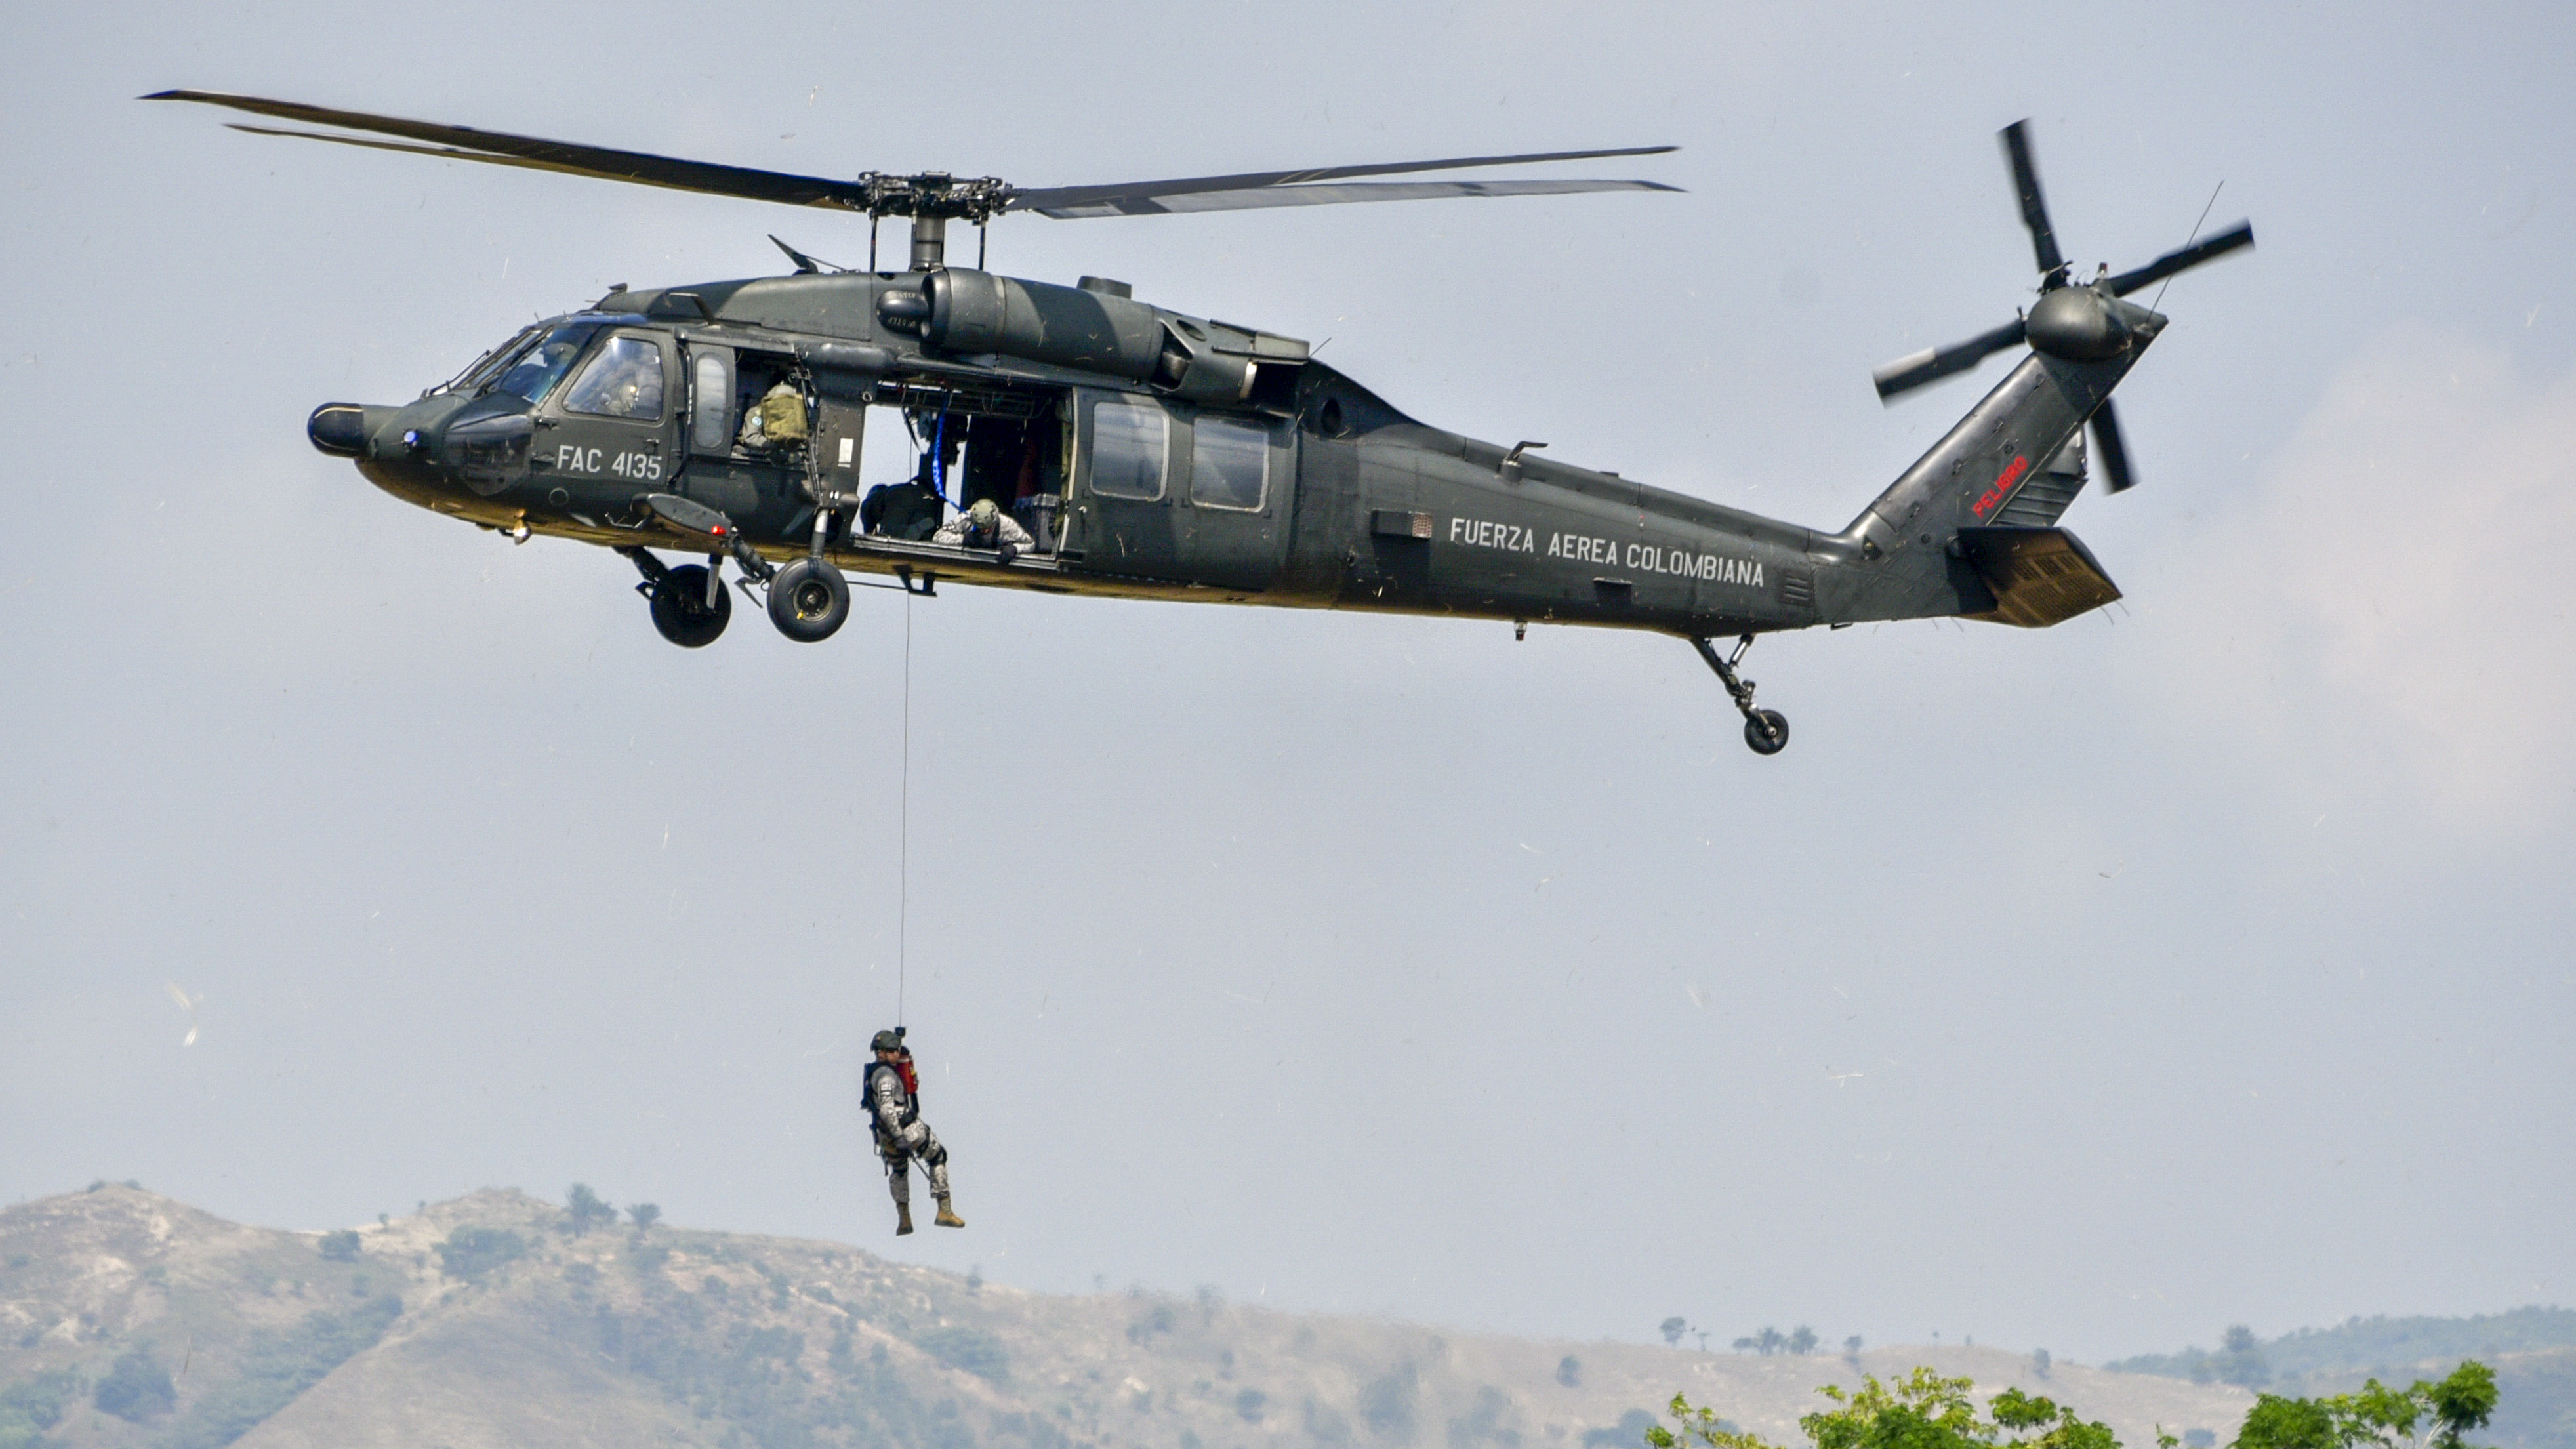 A soldier rappels from a helicopter during a demonstration by the military forces at President Ivan Duque's launch of the new national security and defense policy at the Tolemaida military fort in Cundinamarca, Colombia, on February 6, 2019. (GUILLERMO LEGARIA/AFP/Getty Images)